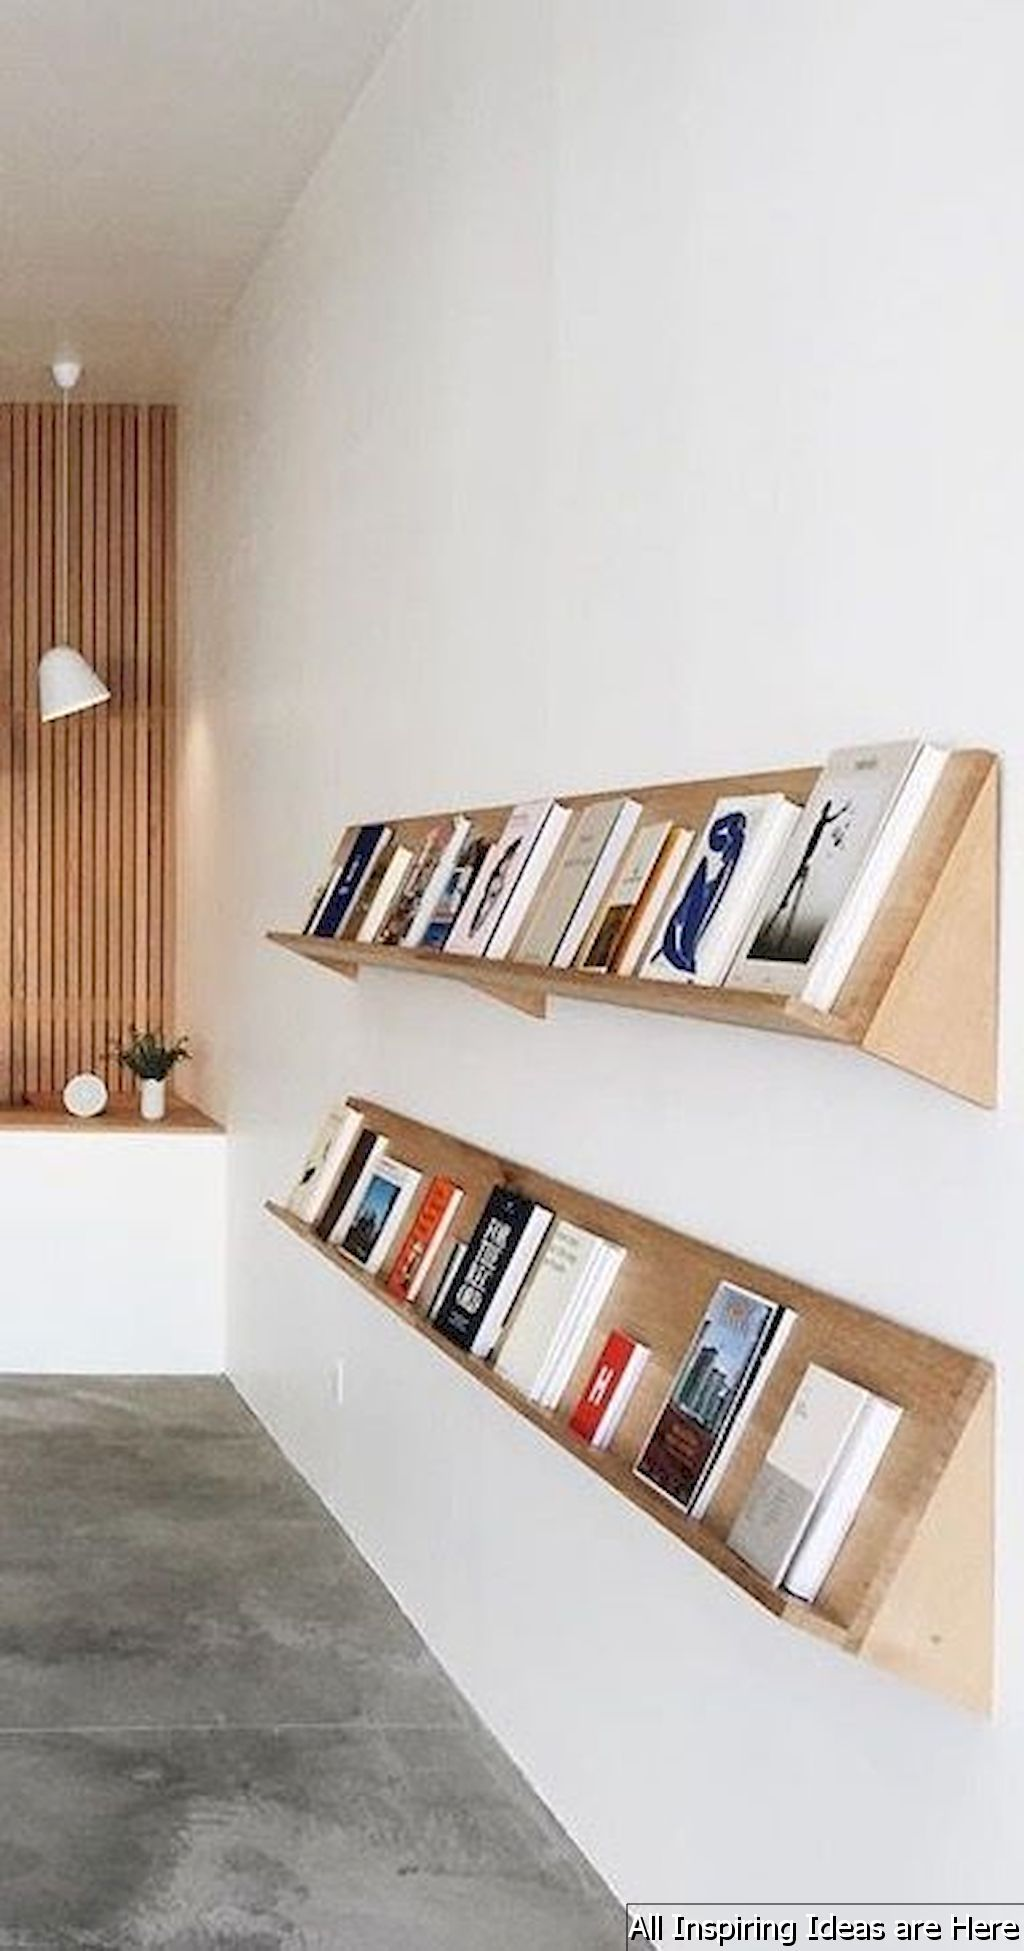 Nice 60 Simple DIY Wall Shelves Floating Ideas https